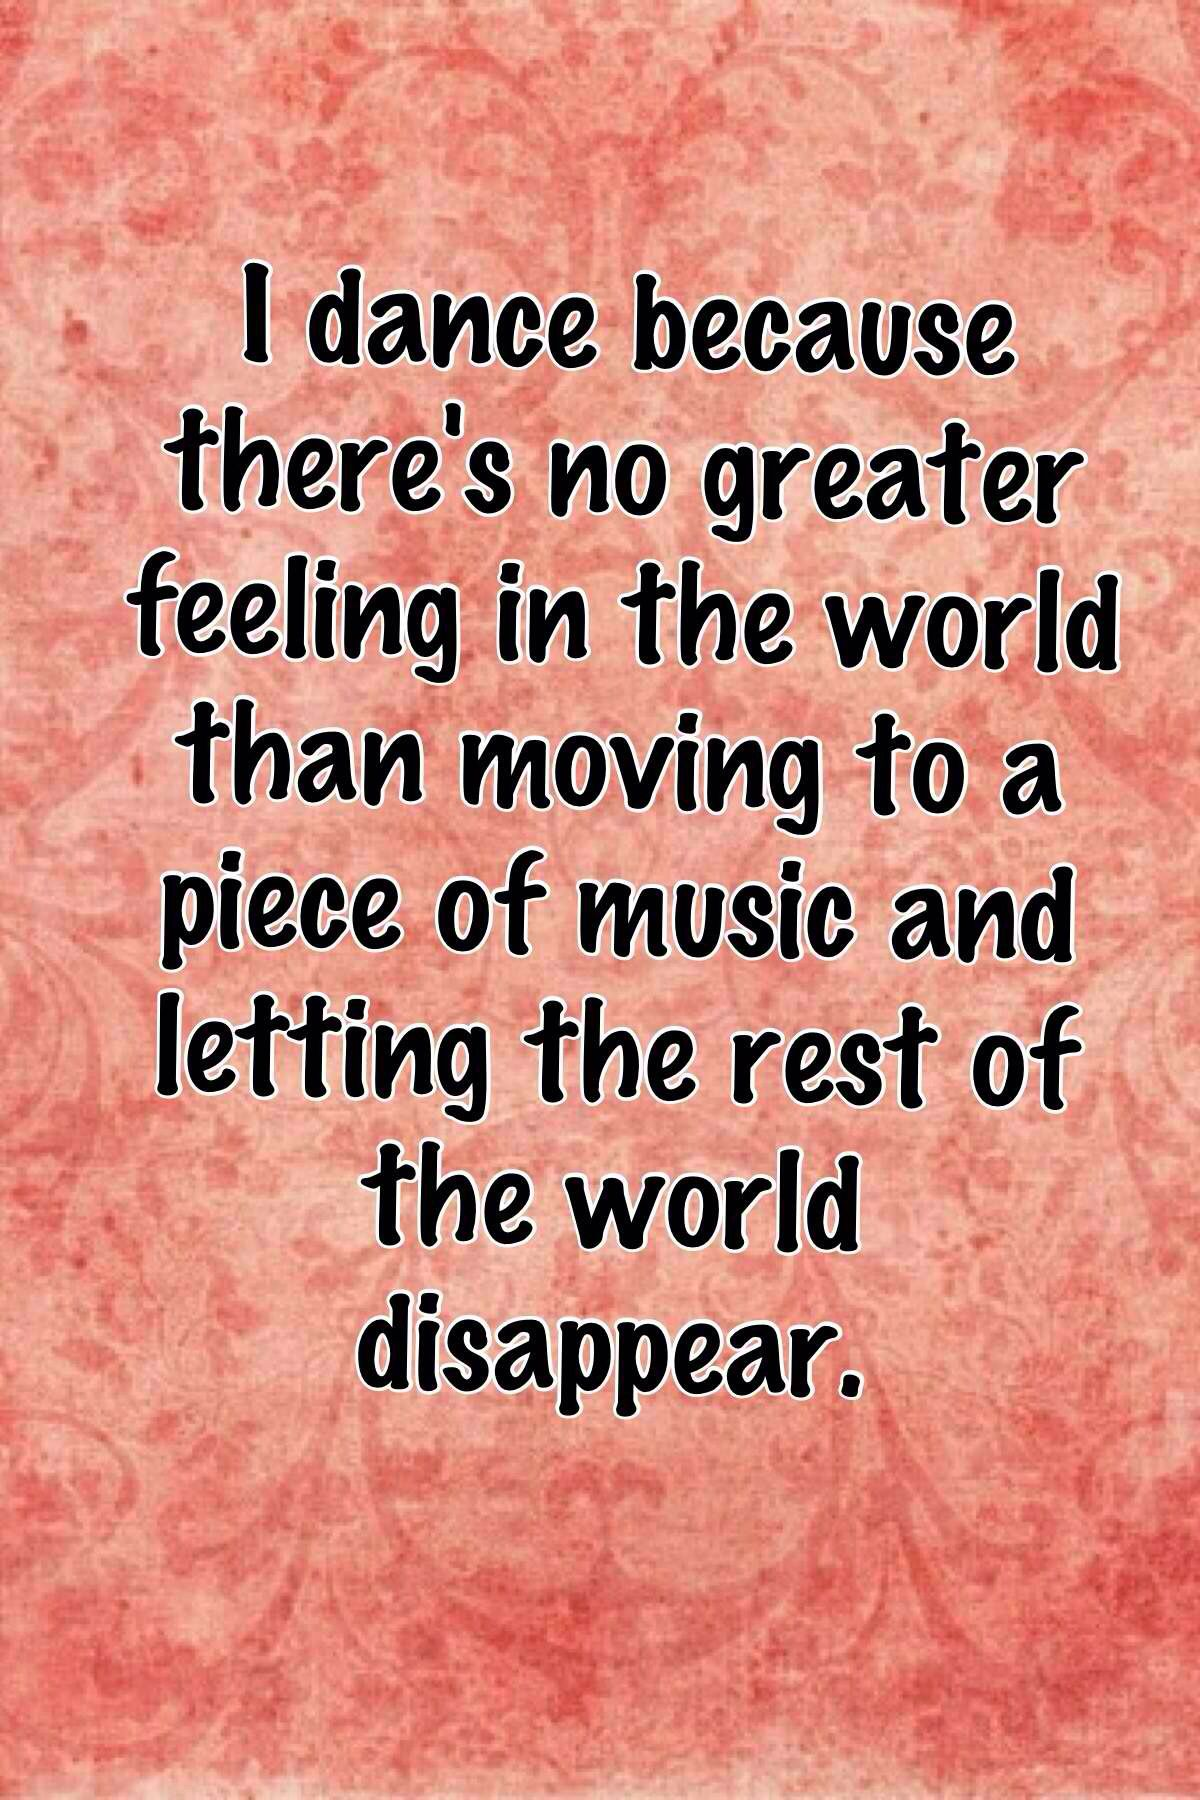 Search Love Quotes Dance Quotes  Google Search  Love 2 Dance  Pinterest  Dancing